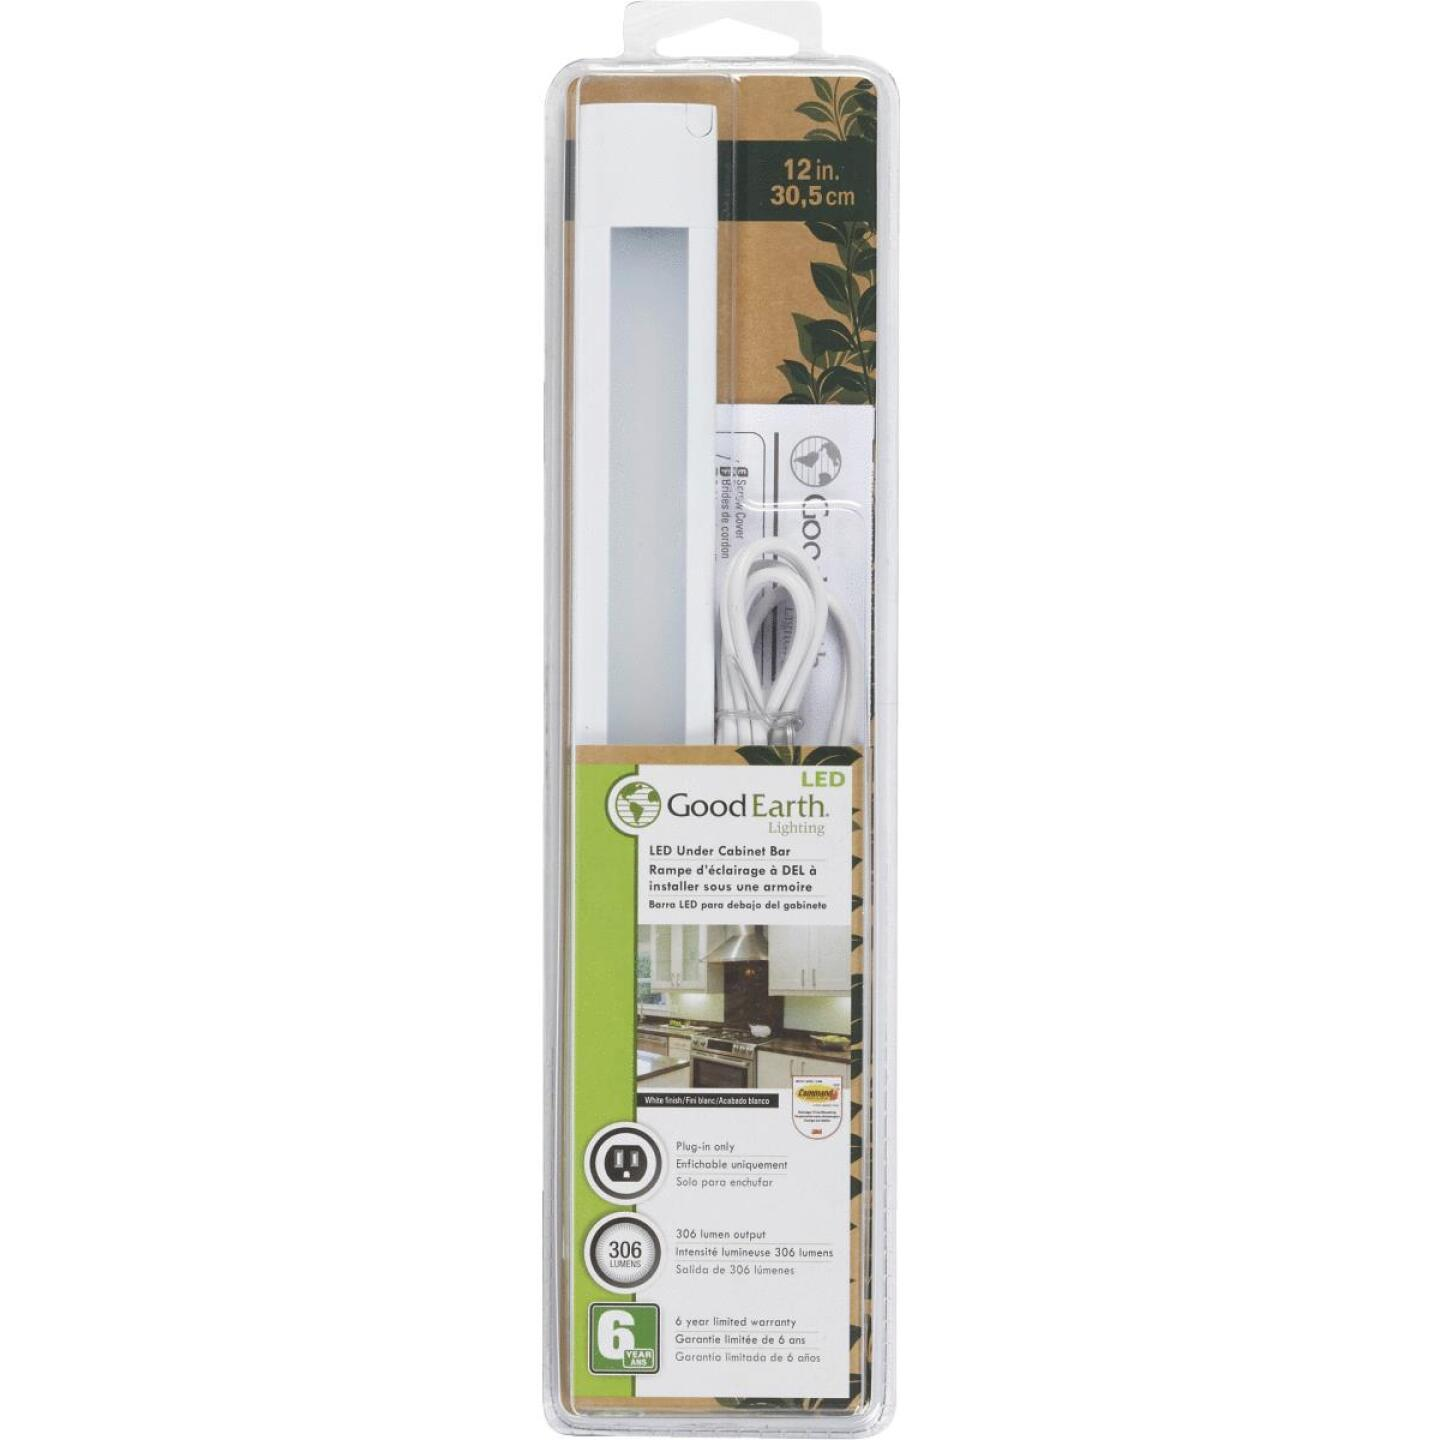 promo code 6832b 60aef Good Earth Lighting 12 In. Plug-In White LED Under Cabinet ...